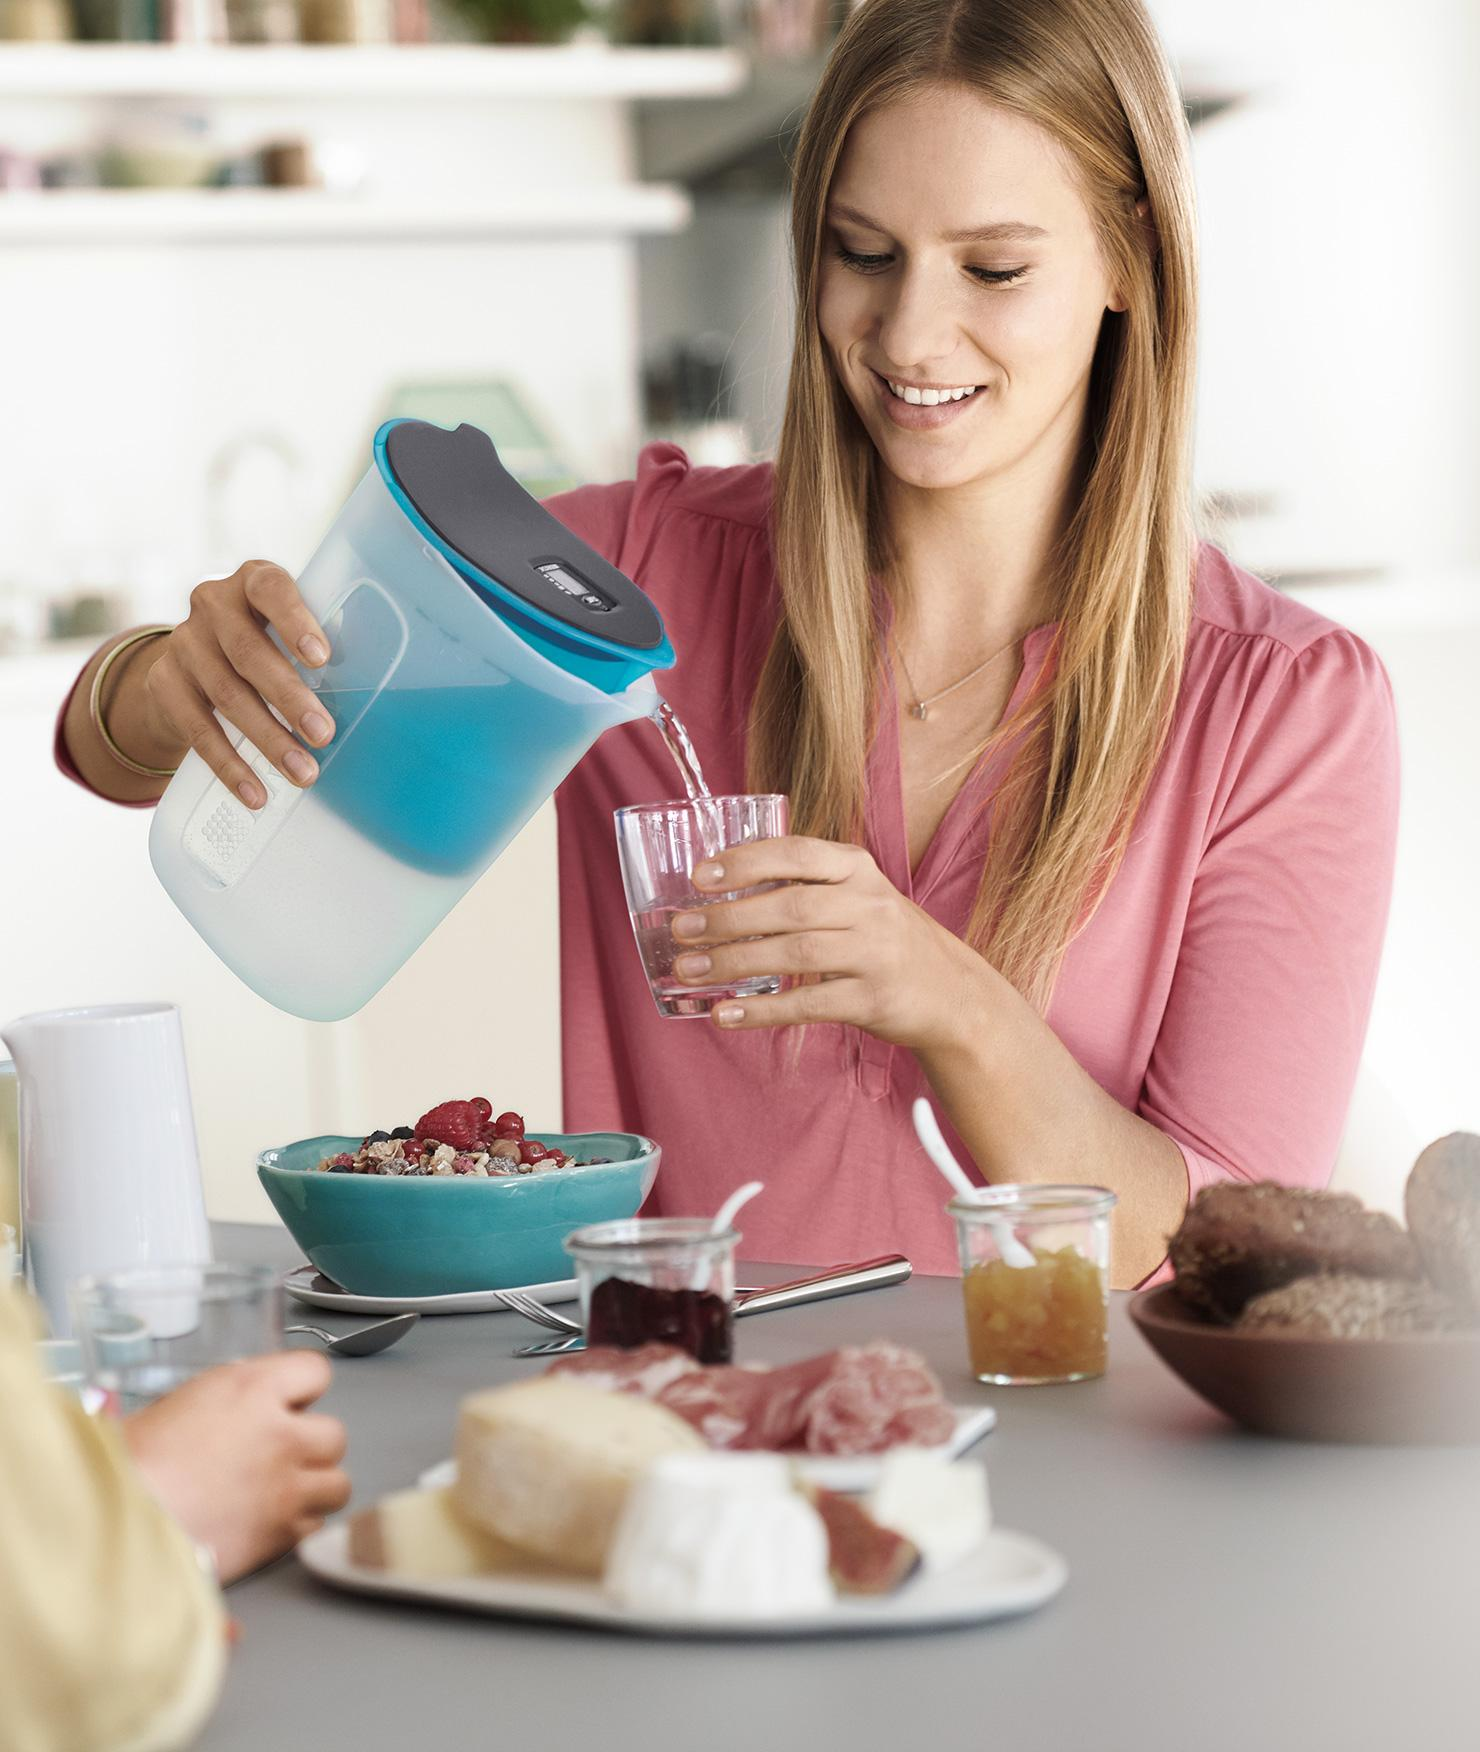 BRITA fill&enjoy Fun pink kitchen woman drink